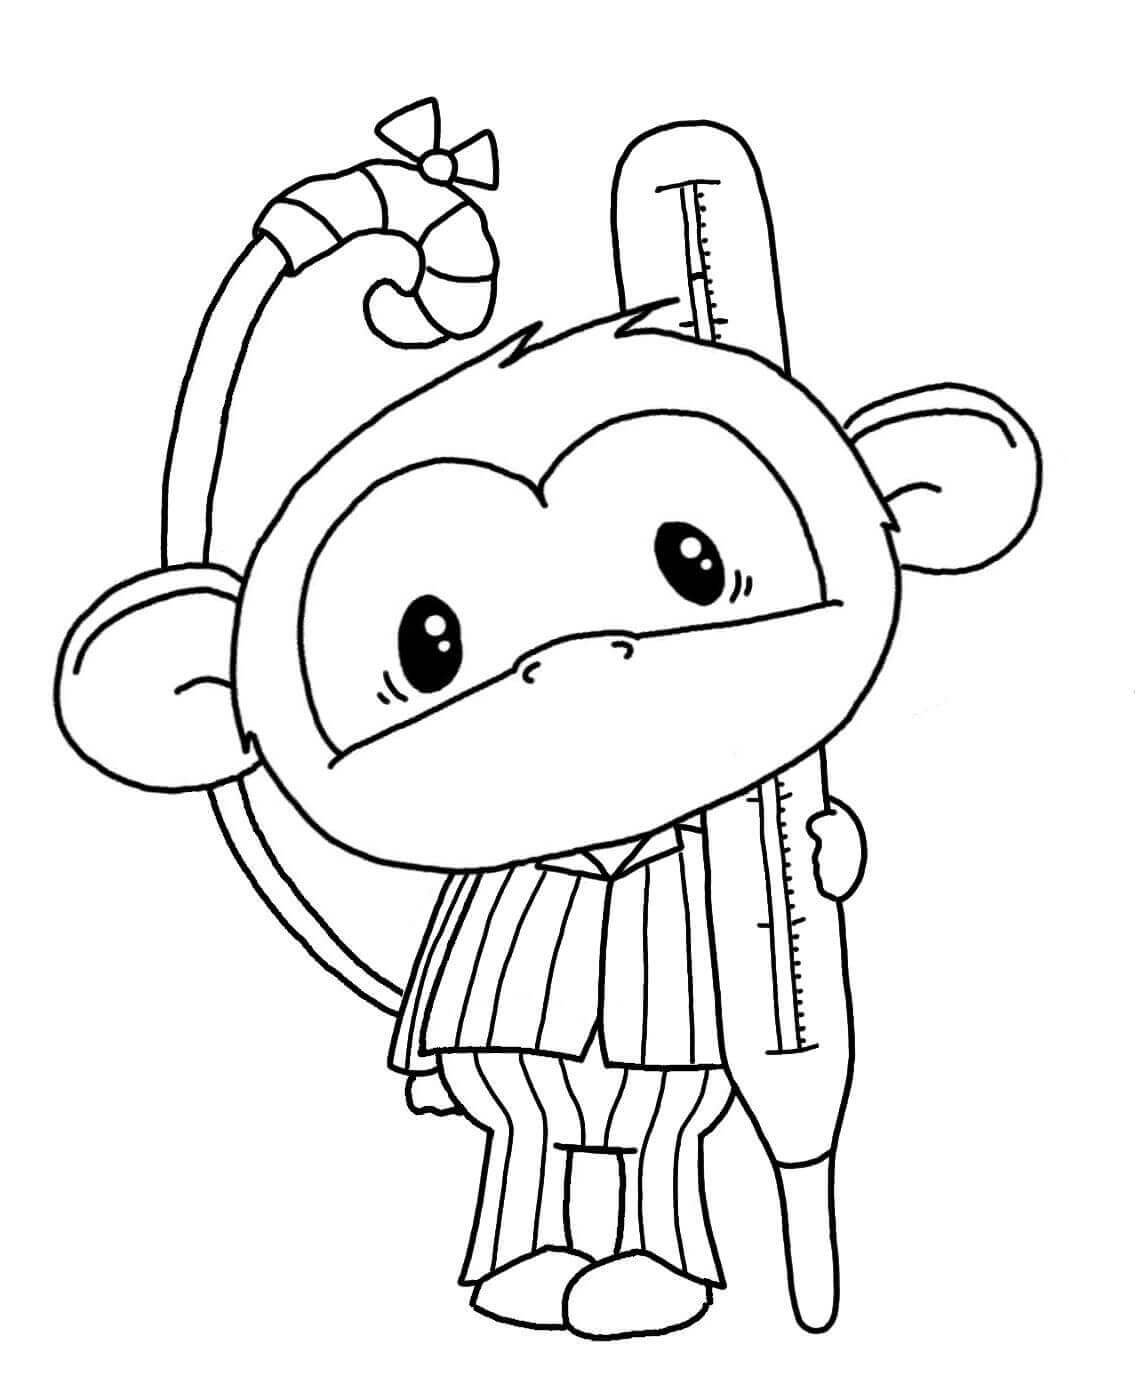 get well soon coloring pages to print get well soon coloring pages to download and print for free to well soon get coloring print pages